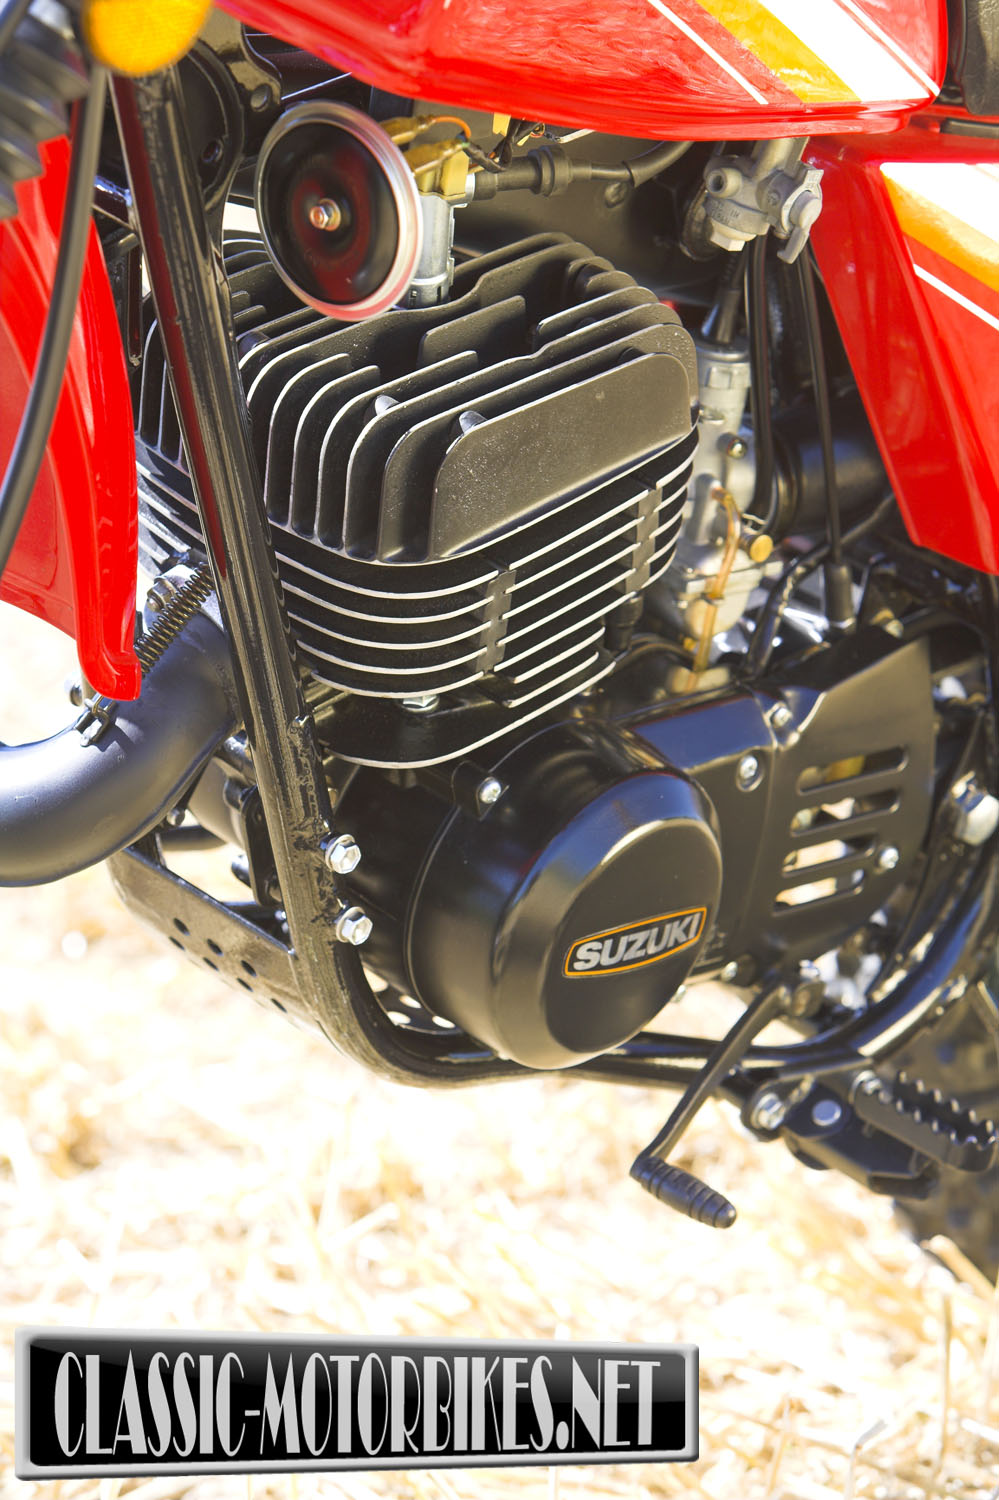 1978 Suzuki Ts250 Ts 250 Wiring Diagram Model Year Engine 1 Cylinder 2 Stroke Single Reed Together With Stihl Chainsaw 021 Parts